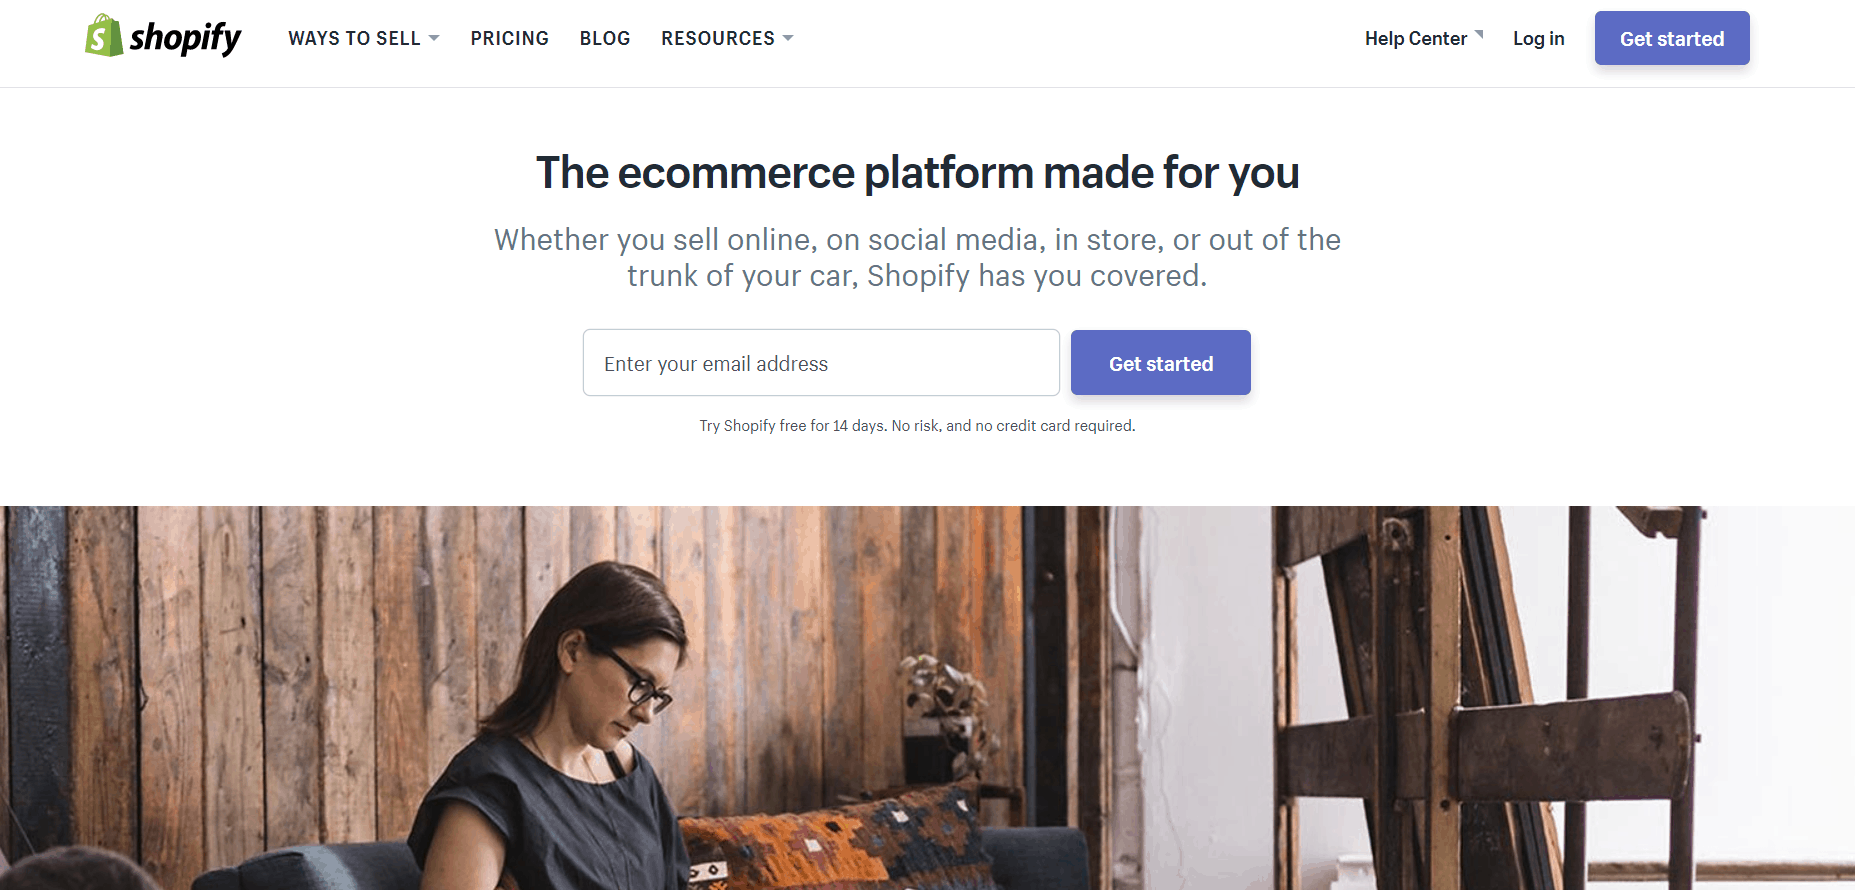 Shopify is built with Ruby on Rails